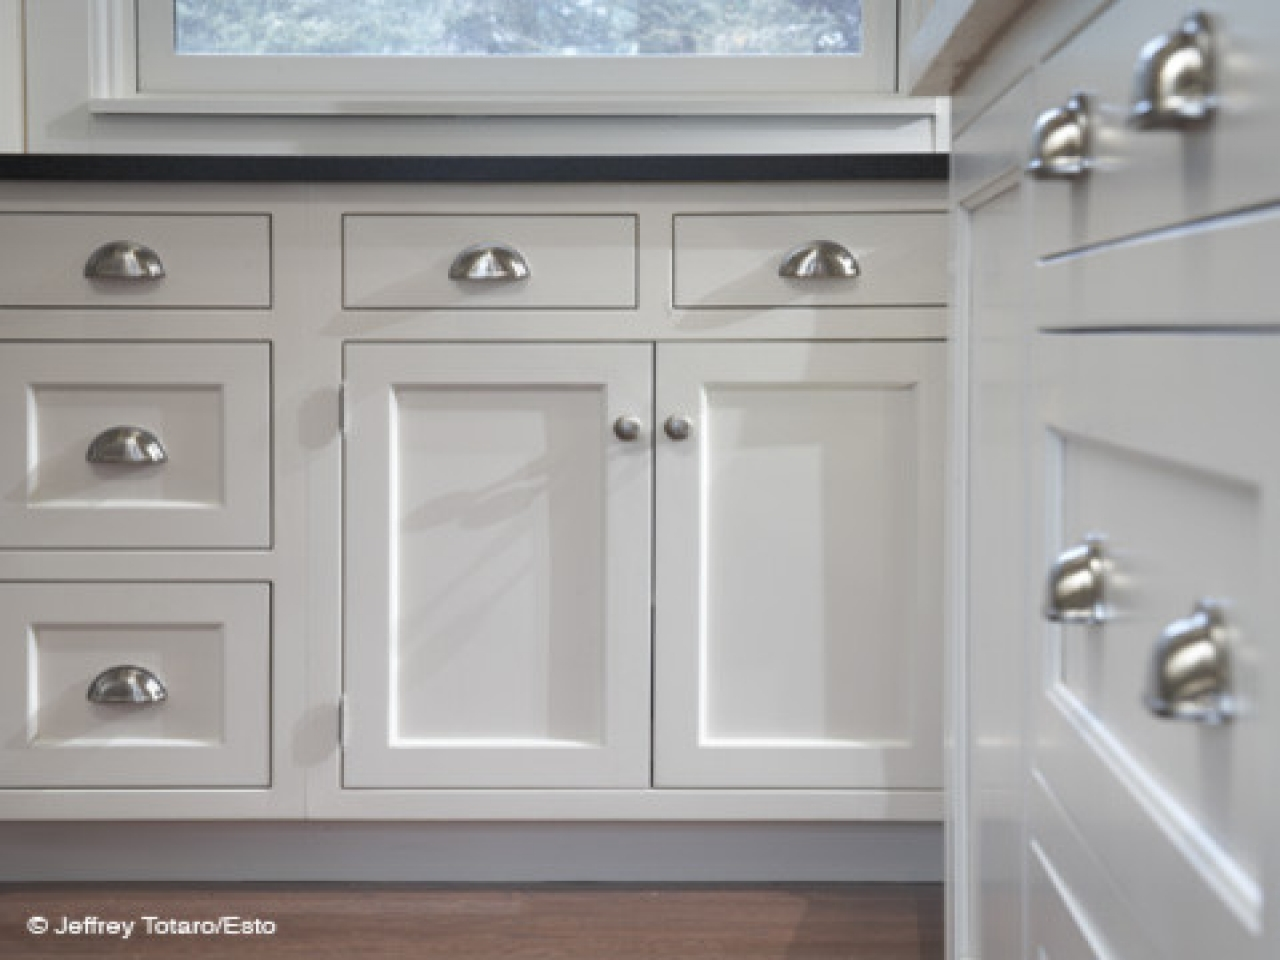 Kitchen Pull Handles For Cabinets